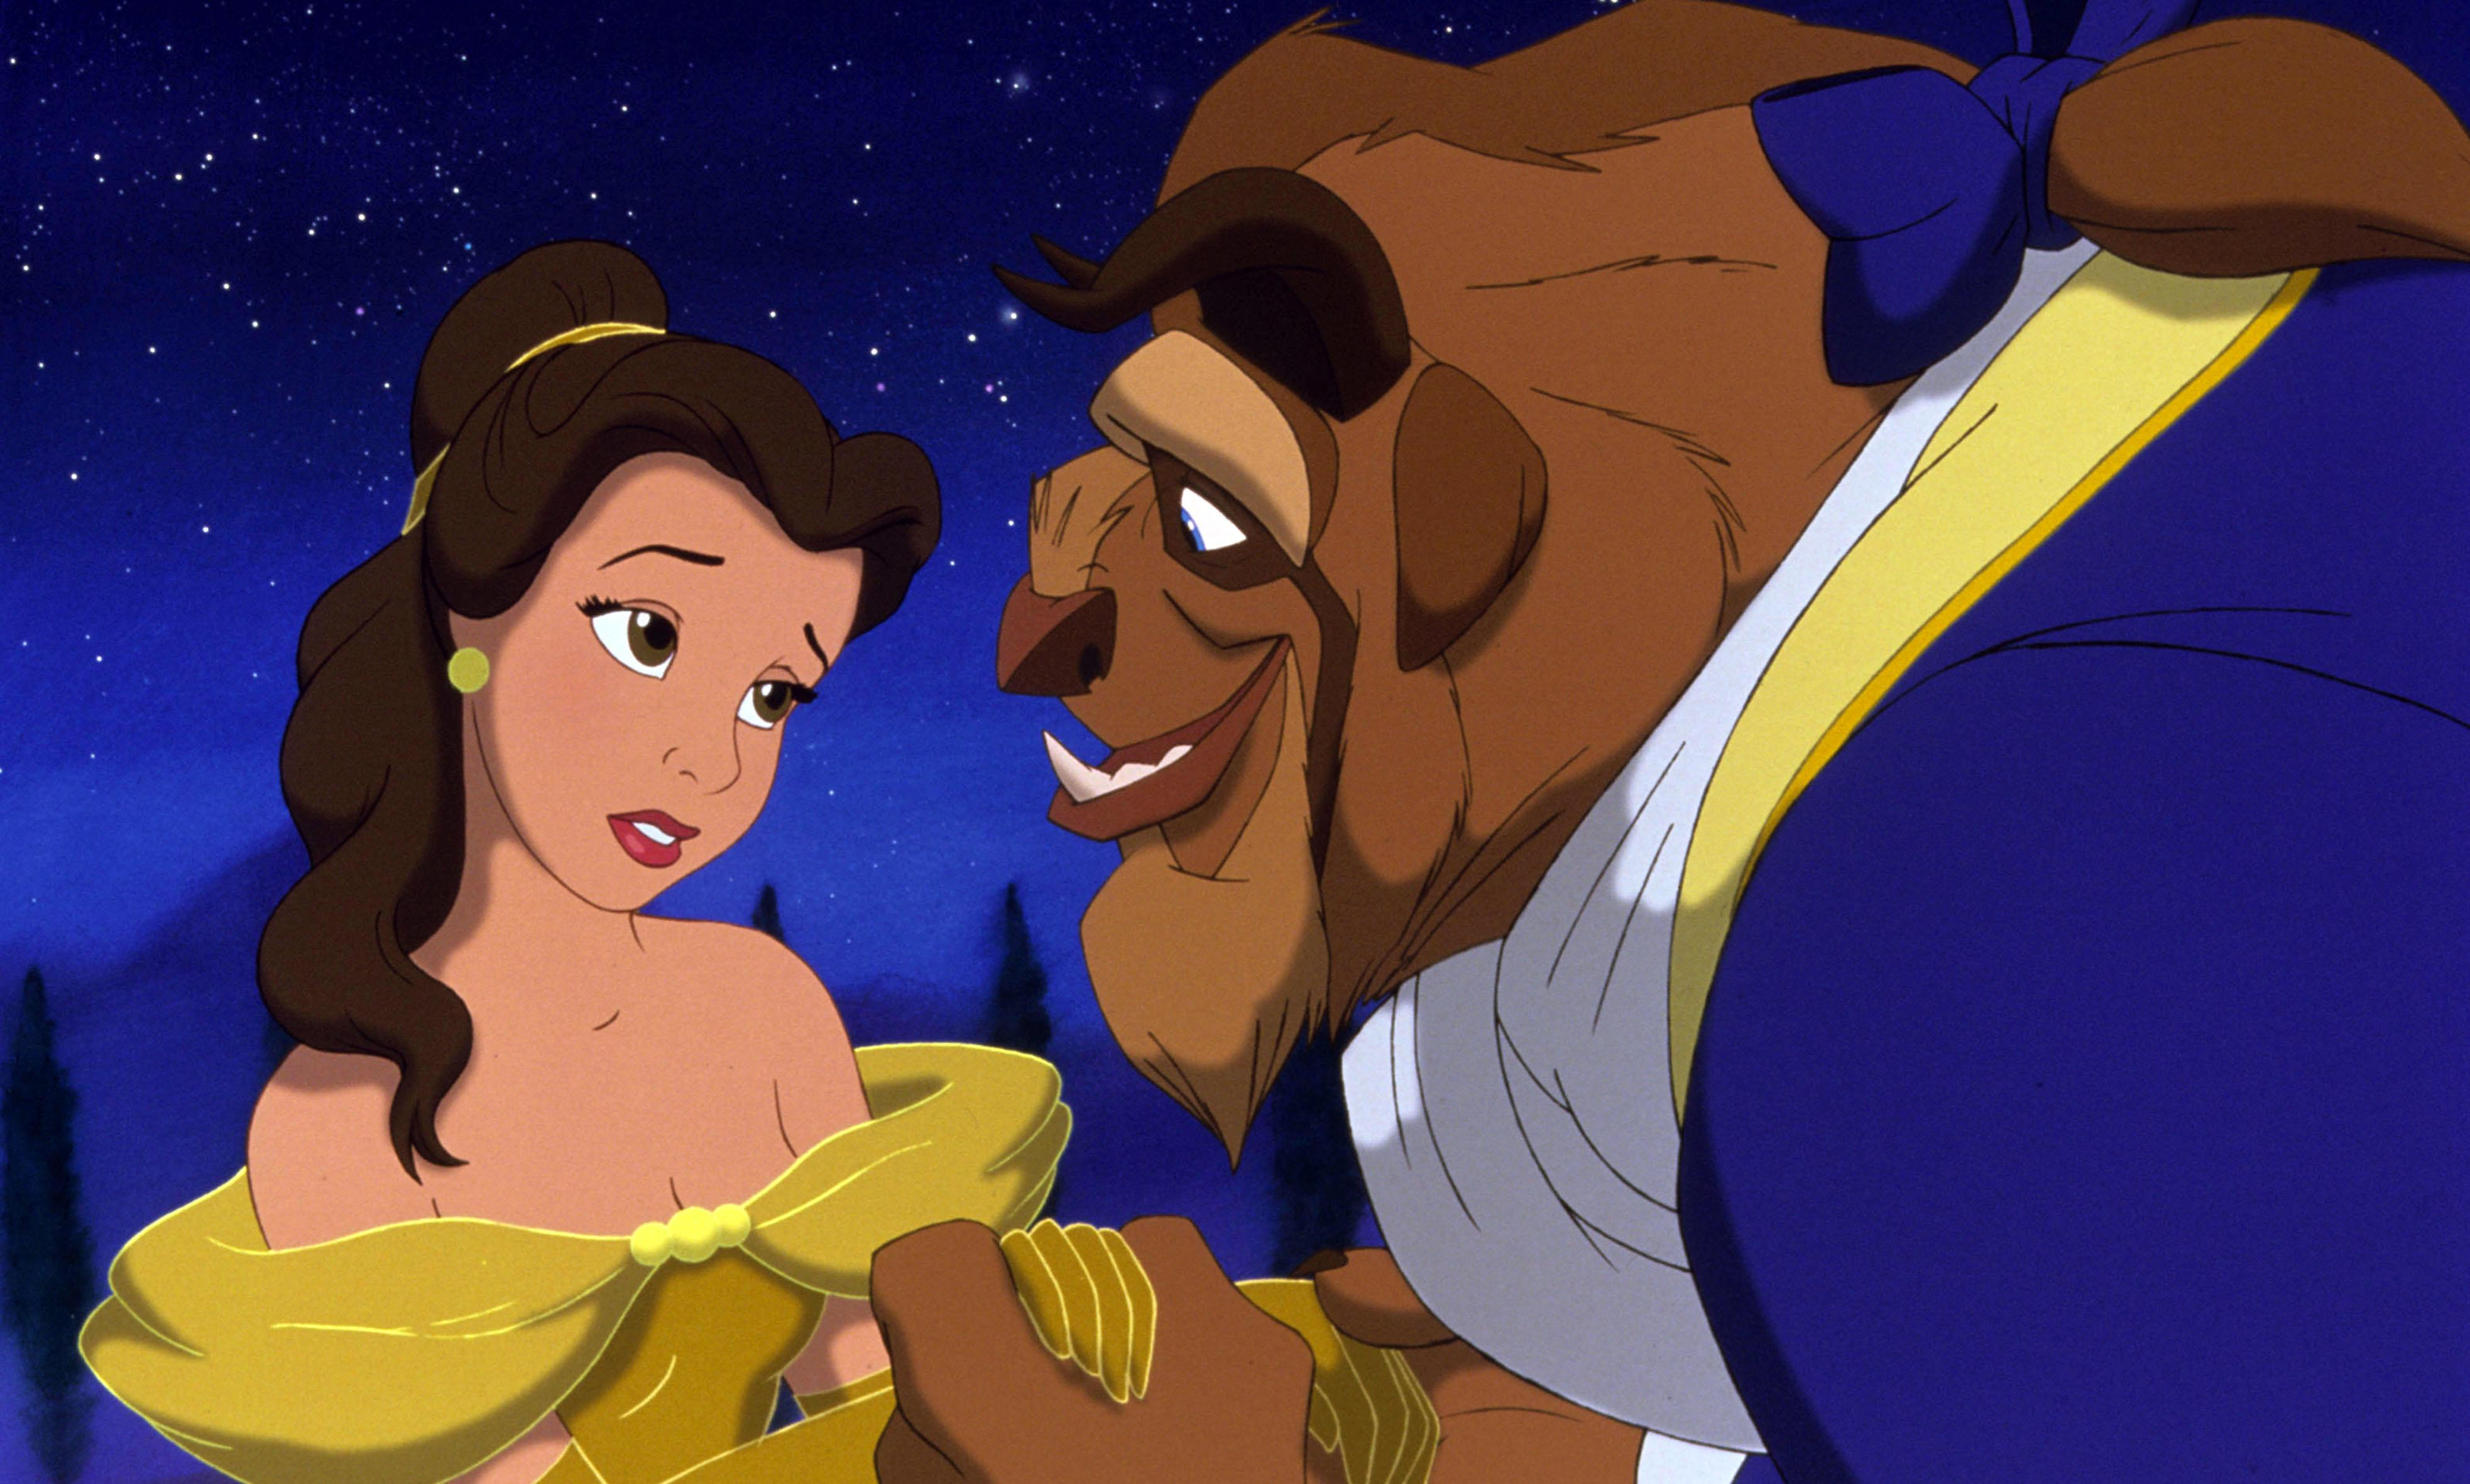 Cineworld is screening Disney's classic Beauty and the Beast for just £2.50